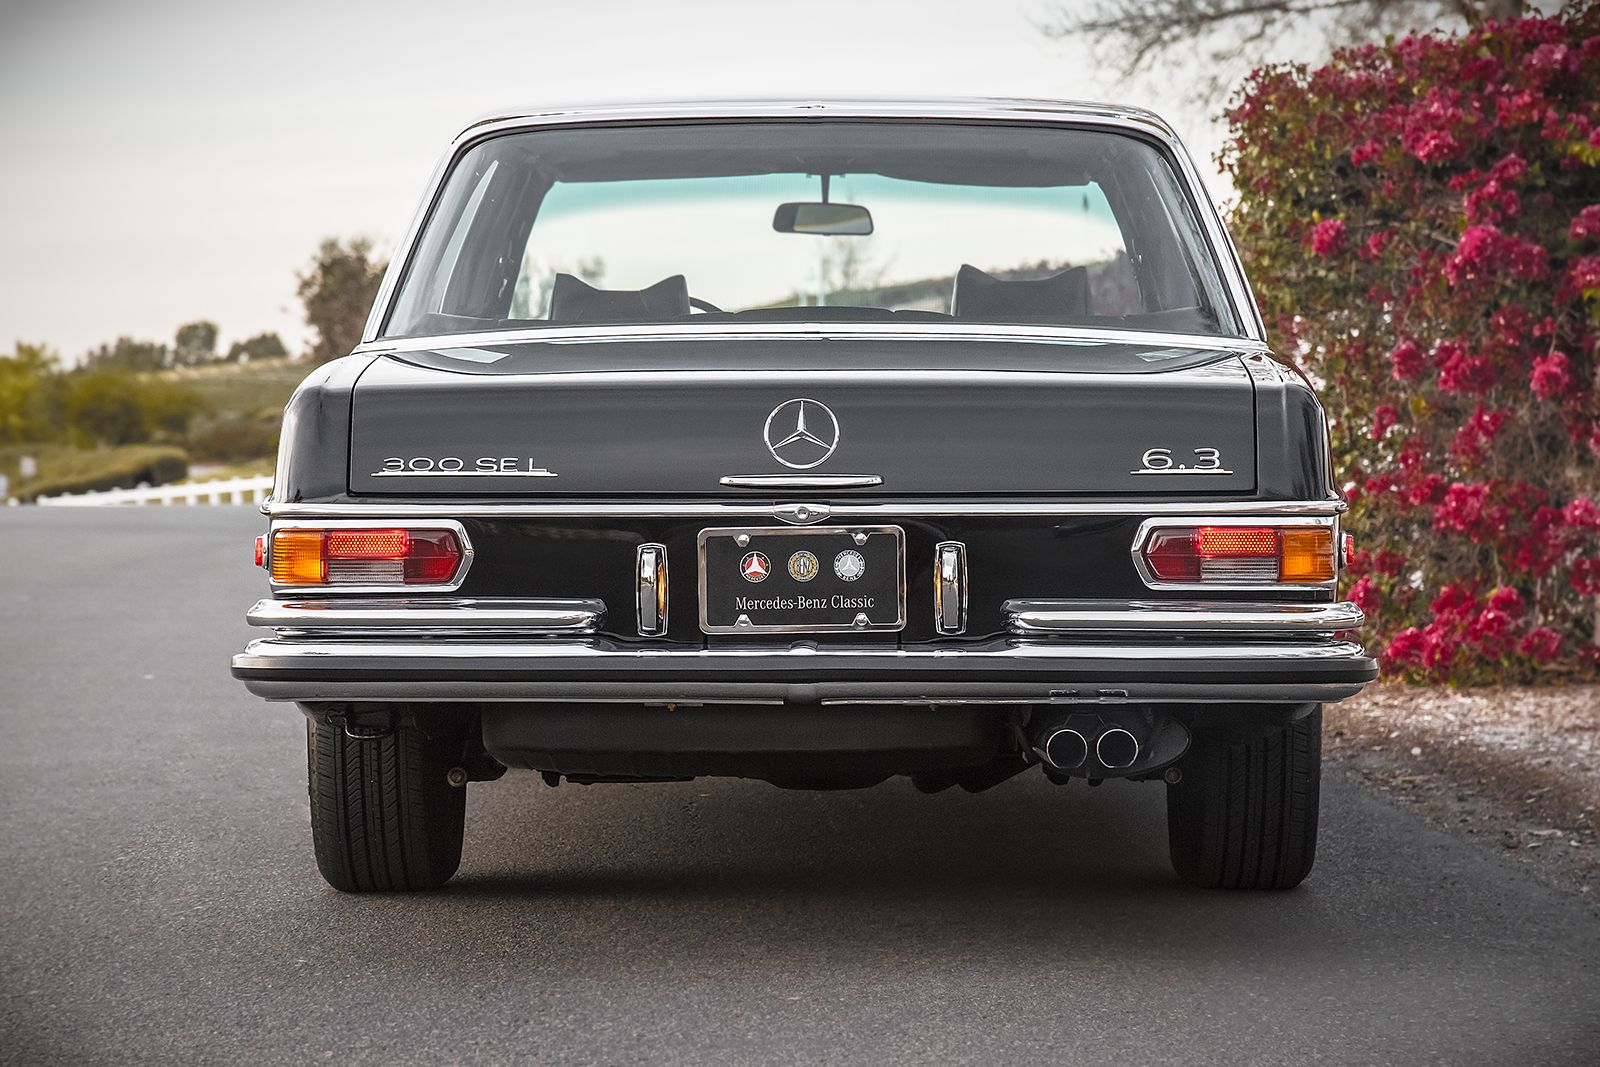 1971 300 sel 6 3 for sale for Mercedes benz offers usa